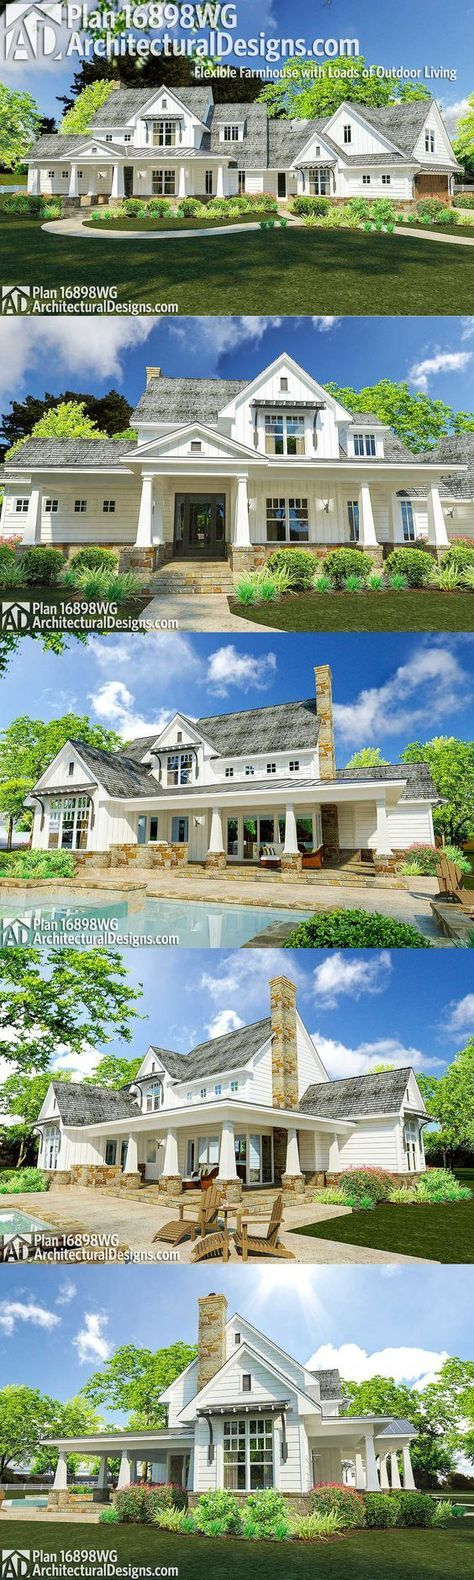 Architectural Designs Modern Farmhouse Plan 16898WG has an angled 2-car garage and porches front and back. Inside, you get over 2,300 square feet of heated living space and up to 4 beds.Ready when you are. Where do YOU want to build?